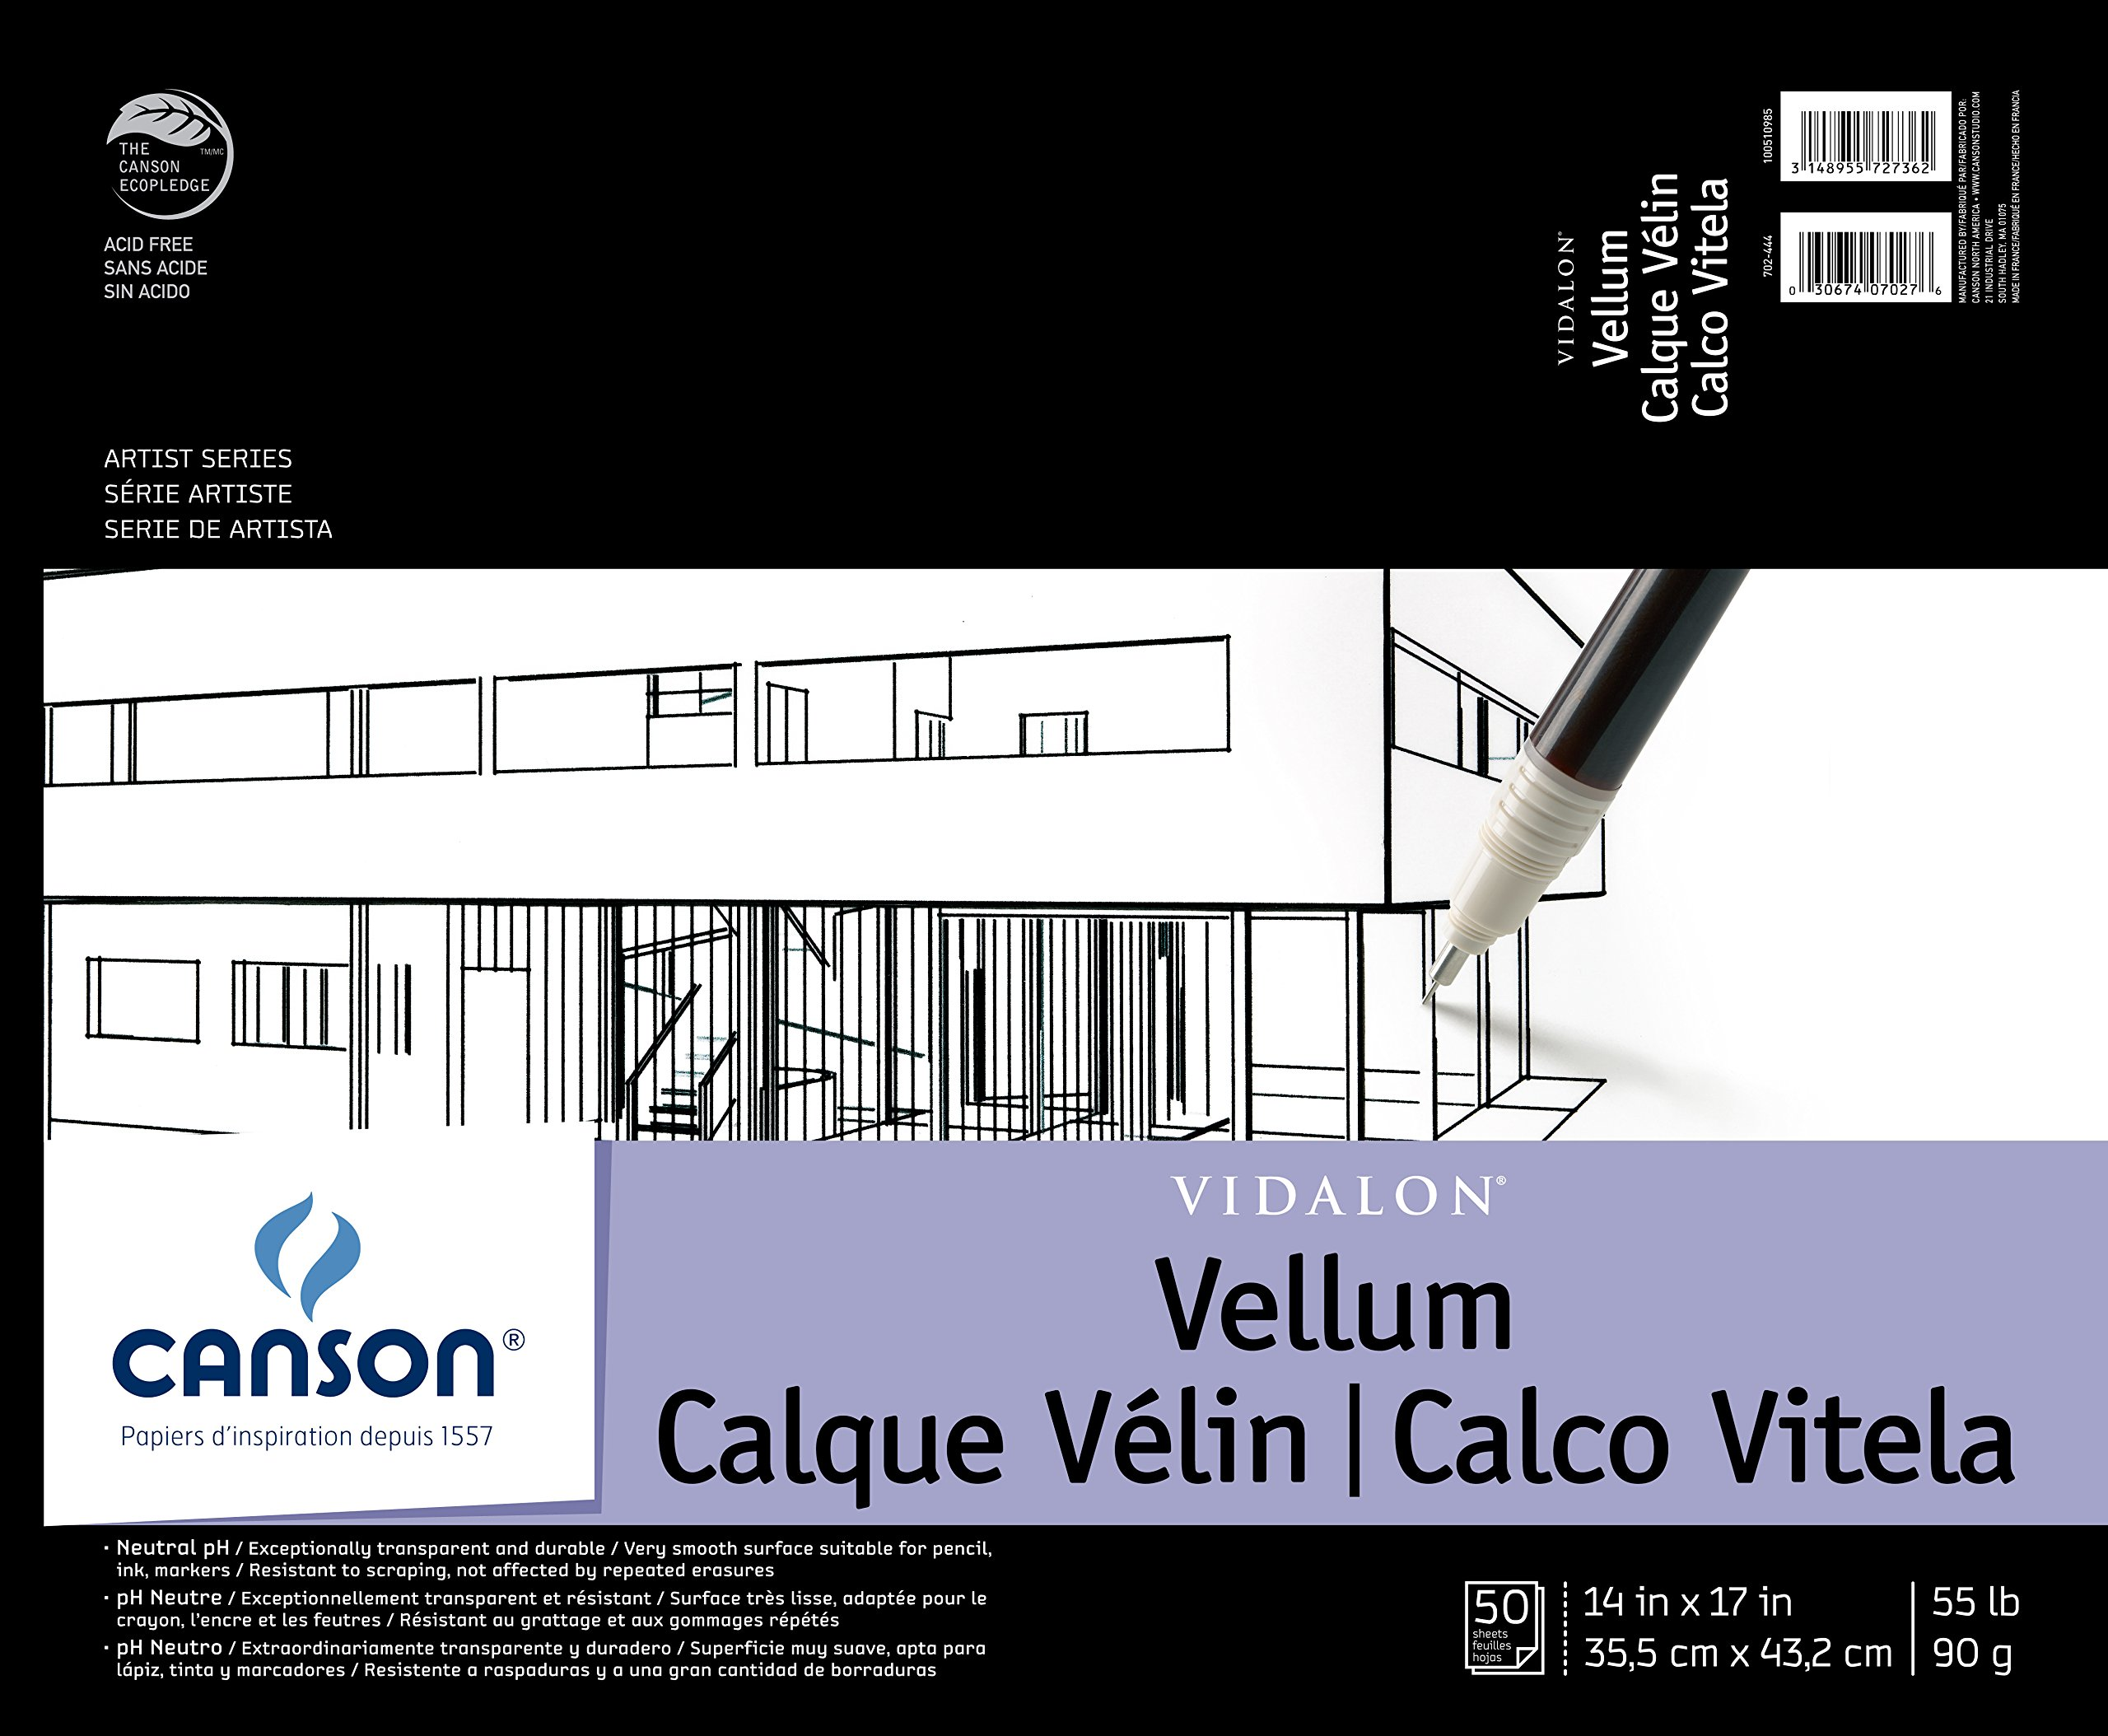 Canson Artist Series Vidalon Vellum Paper Pad, Translucent and Acid Free for Pencil, Ink and Markers, Fold Over, 55 Pound, 14 x 17 Inch, 50 Sheets by Canson